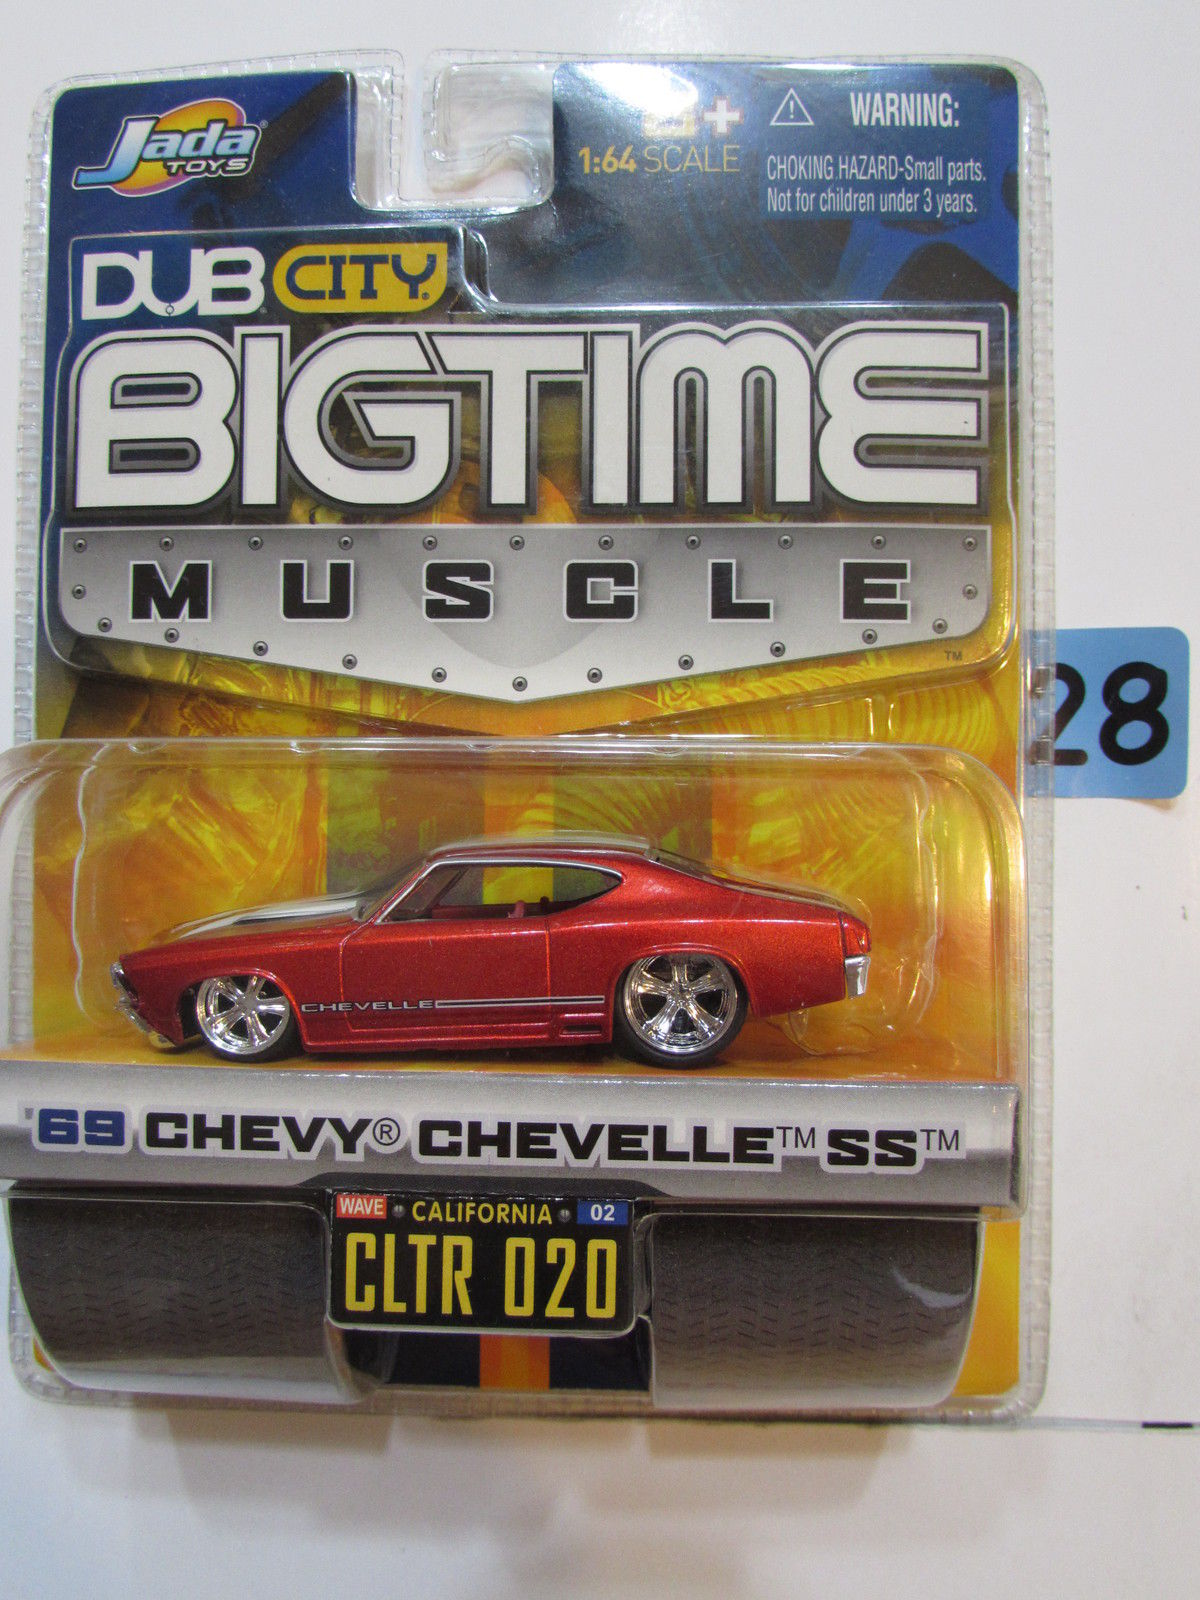 JADA DUB CITY BIGTIME MUSCLE '69 CHEVY CHEVELLE SS CLTR 020 RED E+